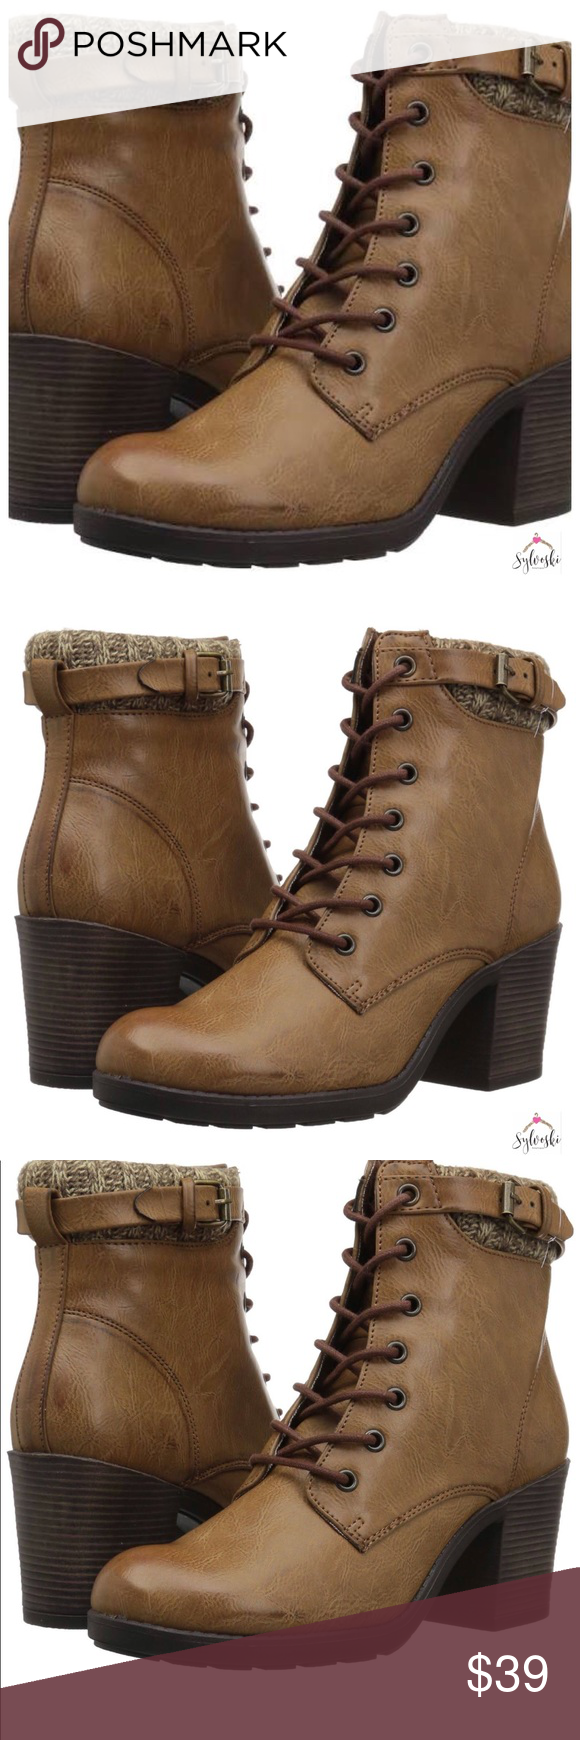 ab493fa144a8 🆕 MIA Women s George Boot